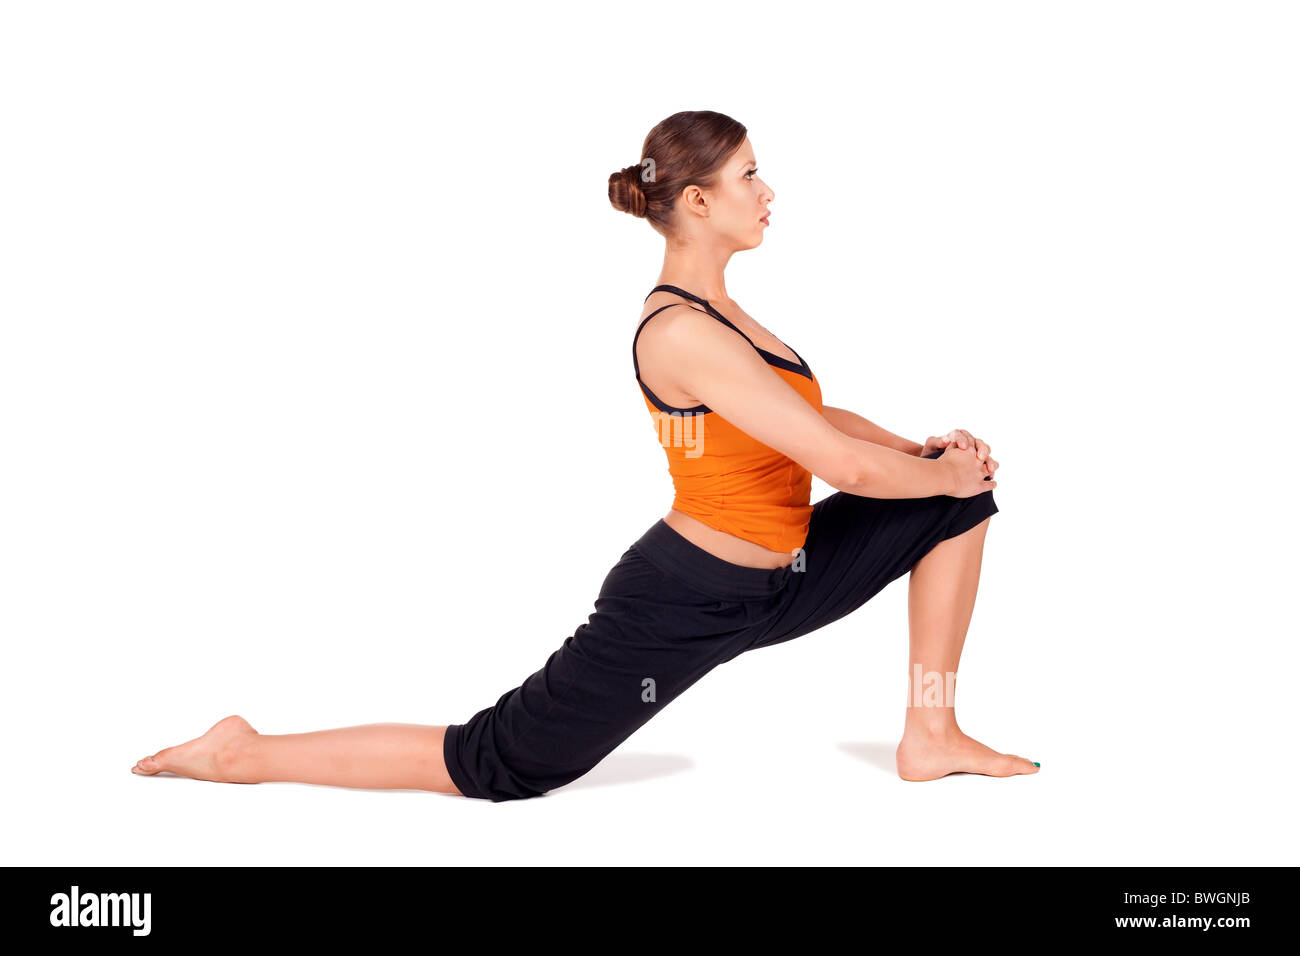 Woman Practicing First Stage Of Yoga Pose Called Crescent Lunge Sanskrit Name Anjaneyasana